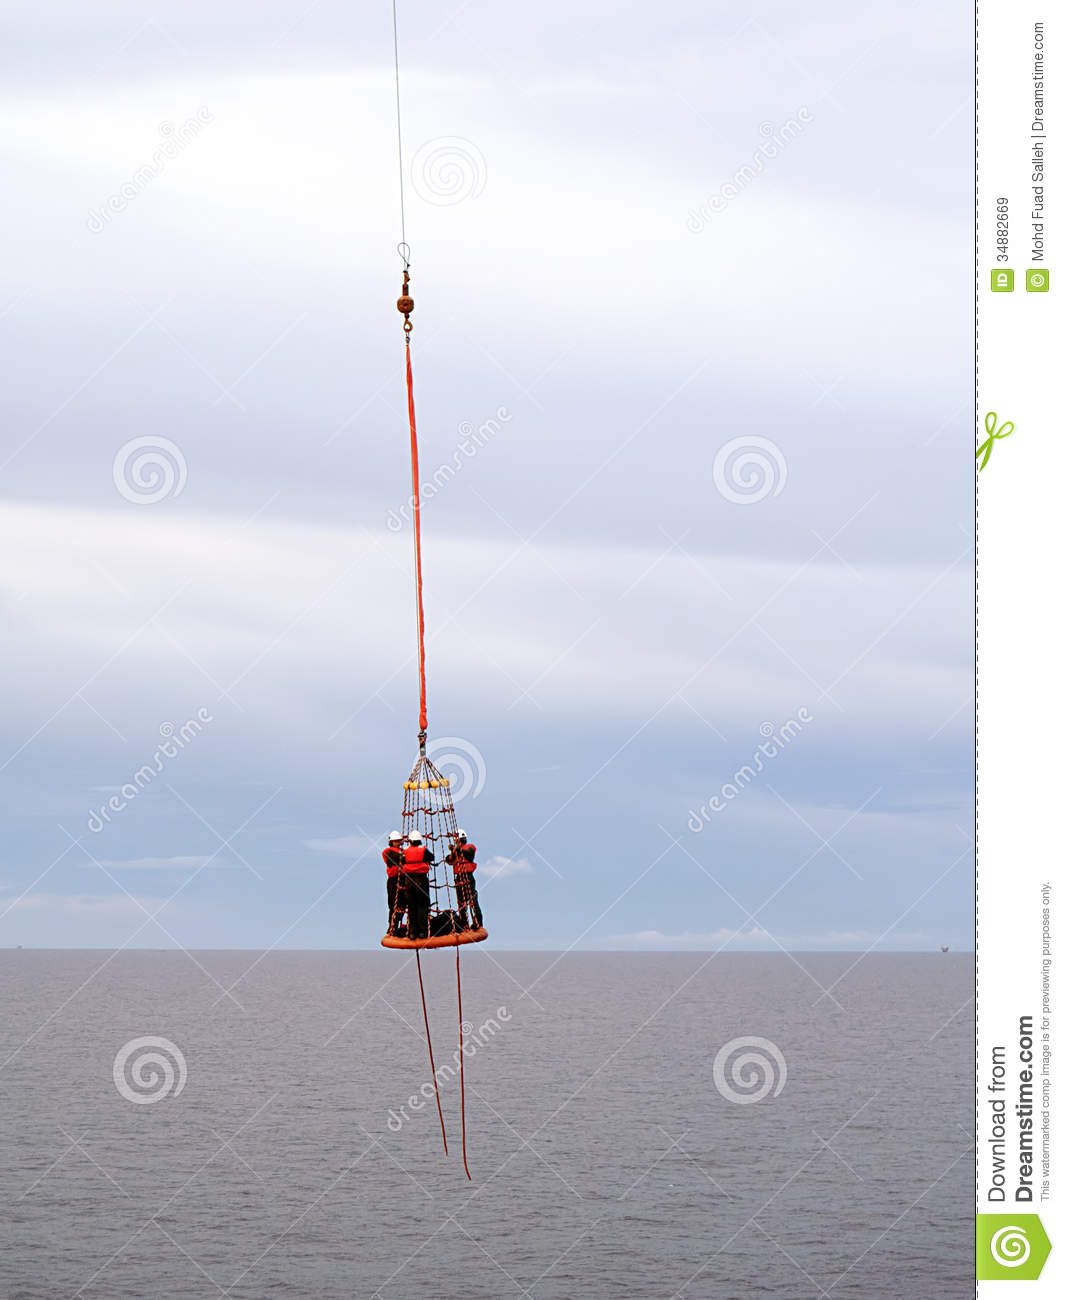 Photo of offshore oil or gas rig personnel being transfer via transfer ...